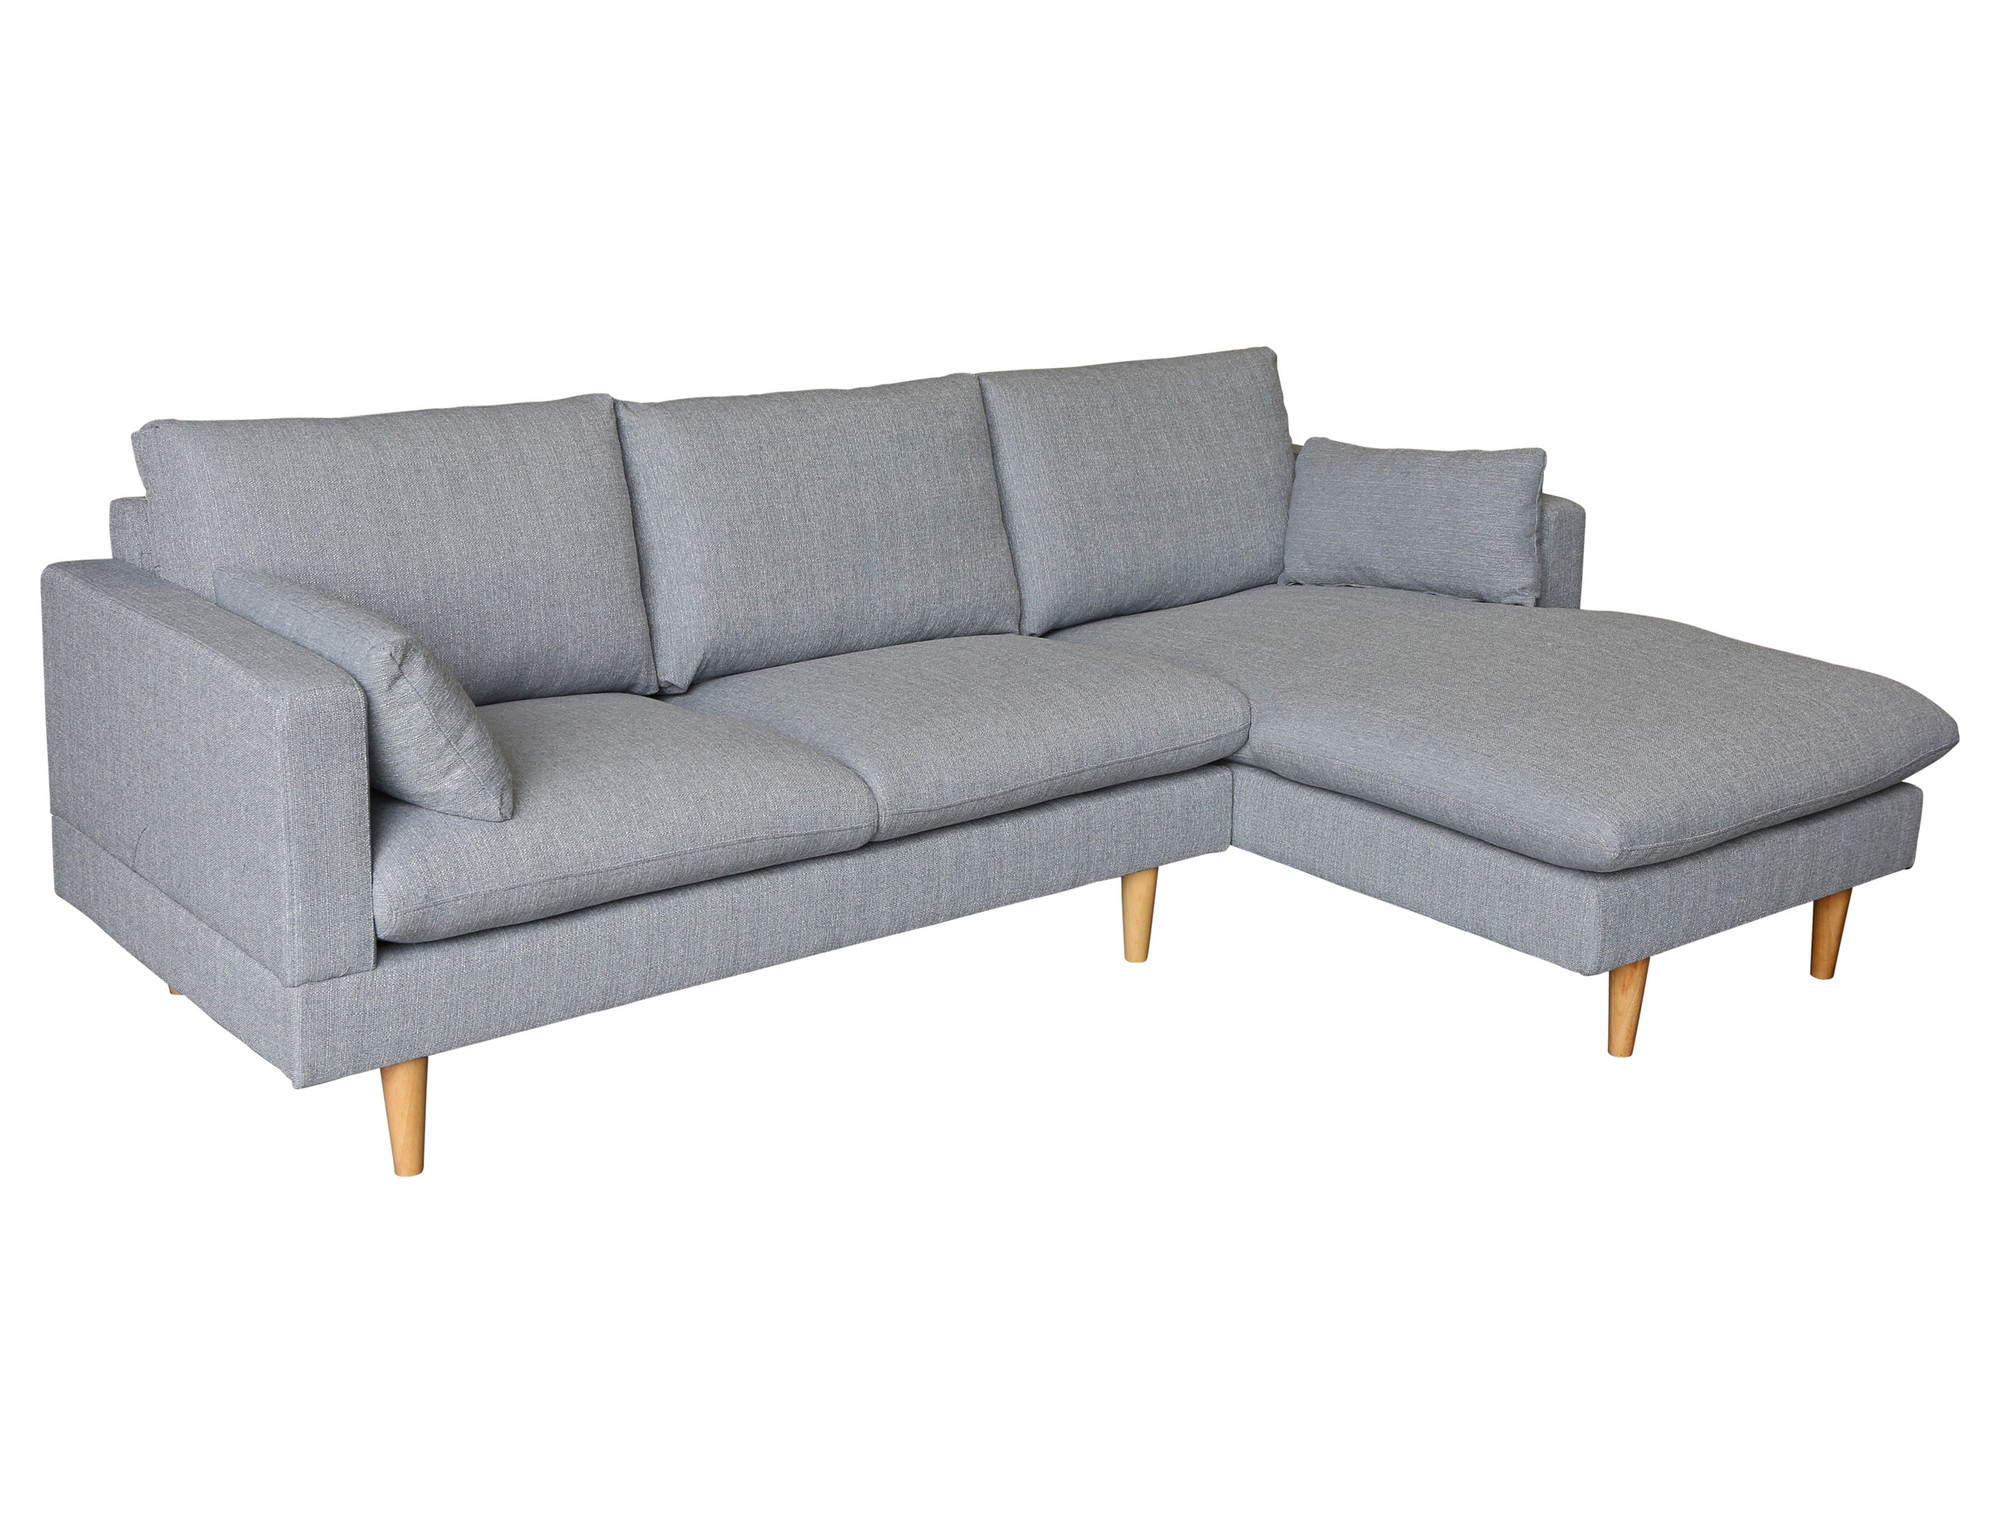 New light grey tia 2 seater sofa with right chaise for 2 seater sofa with chaise